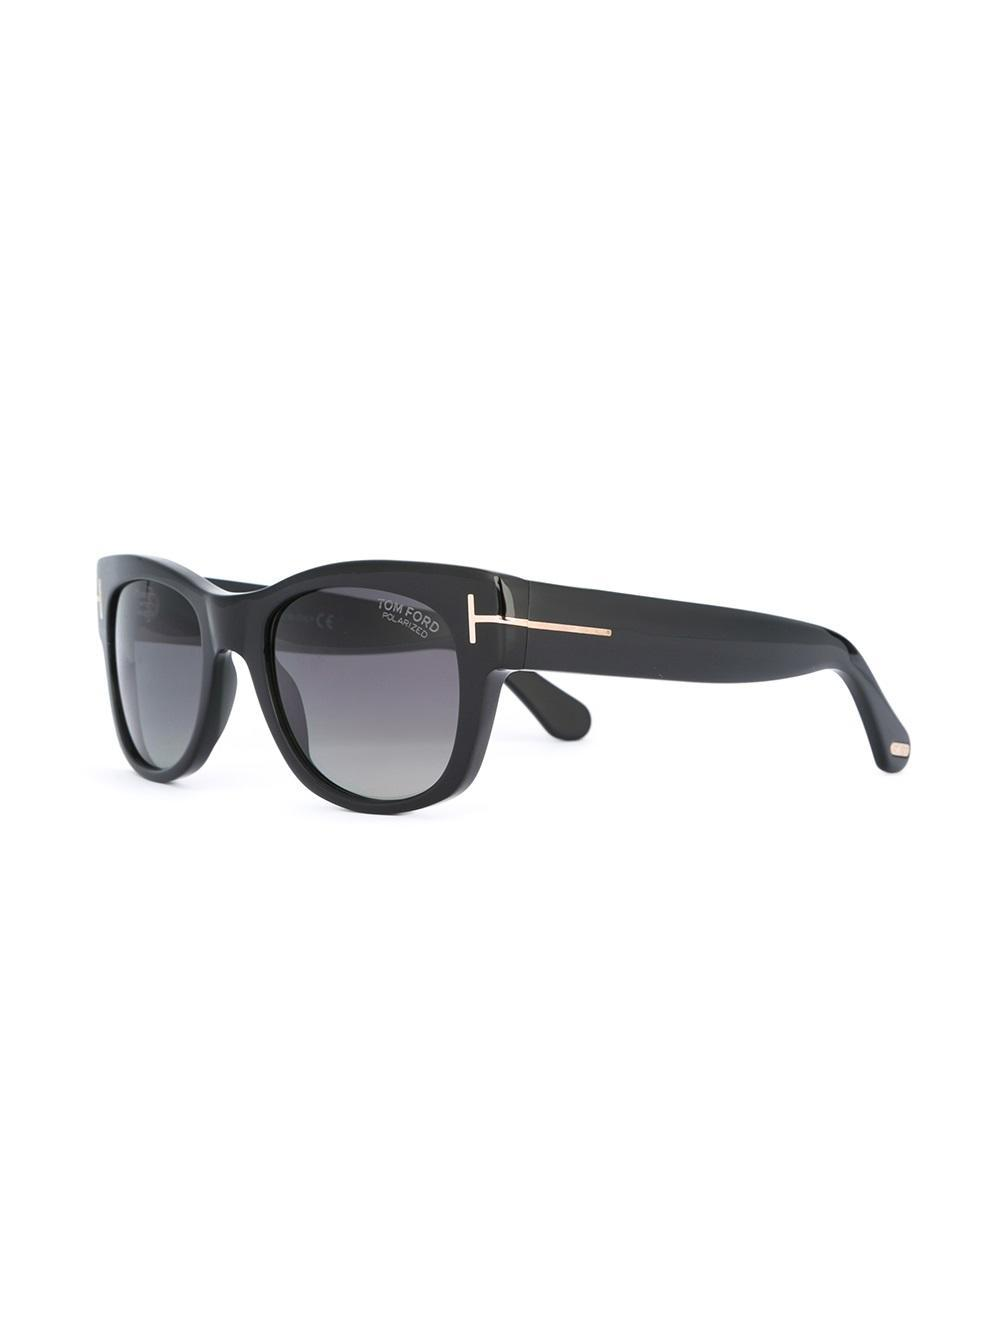 23d97feef93b Lyst - Tom Ford Square Shaped Sunglasses in Black